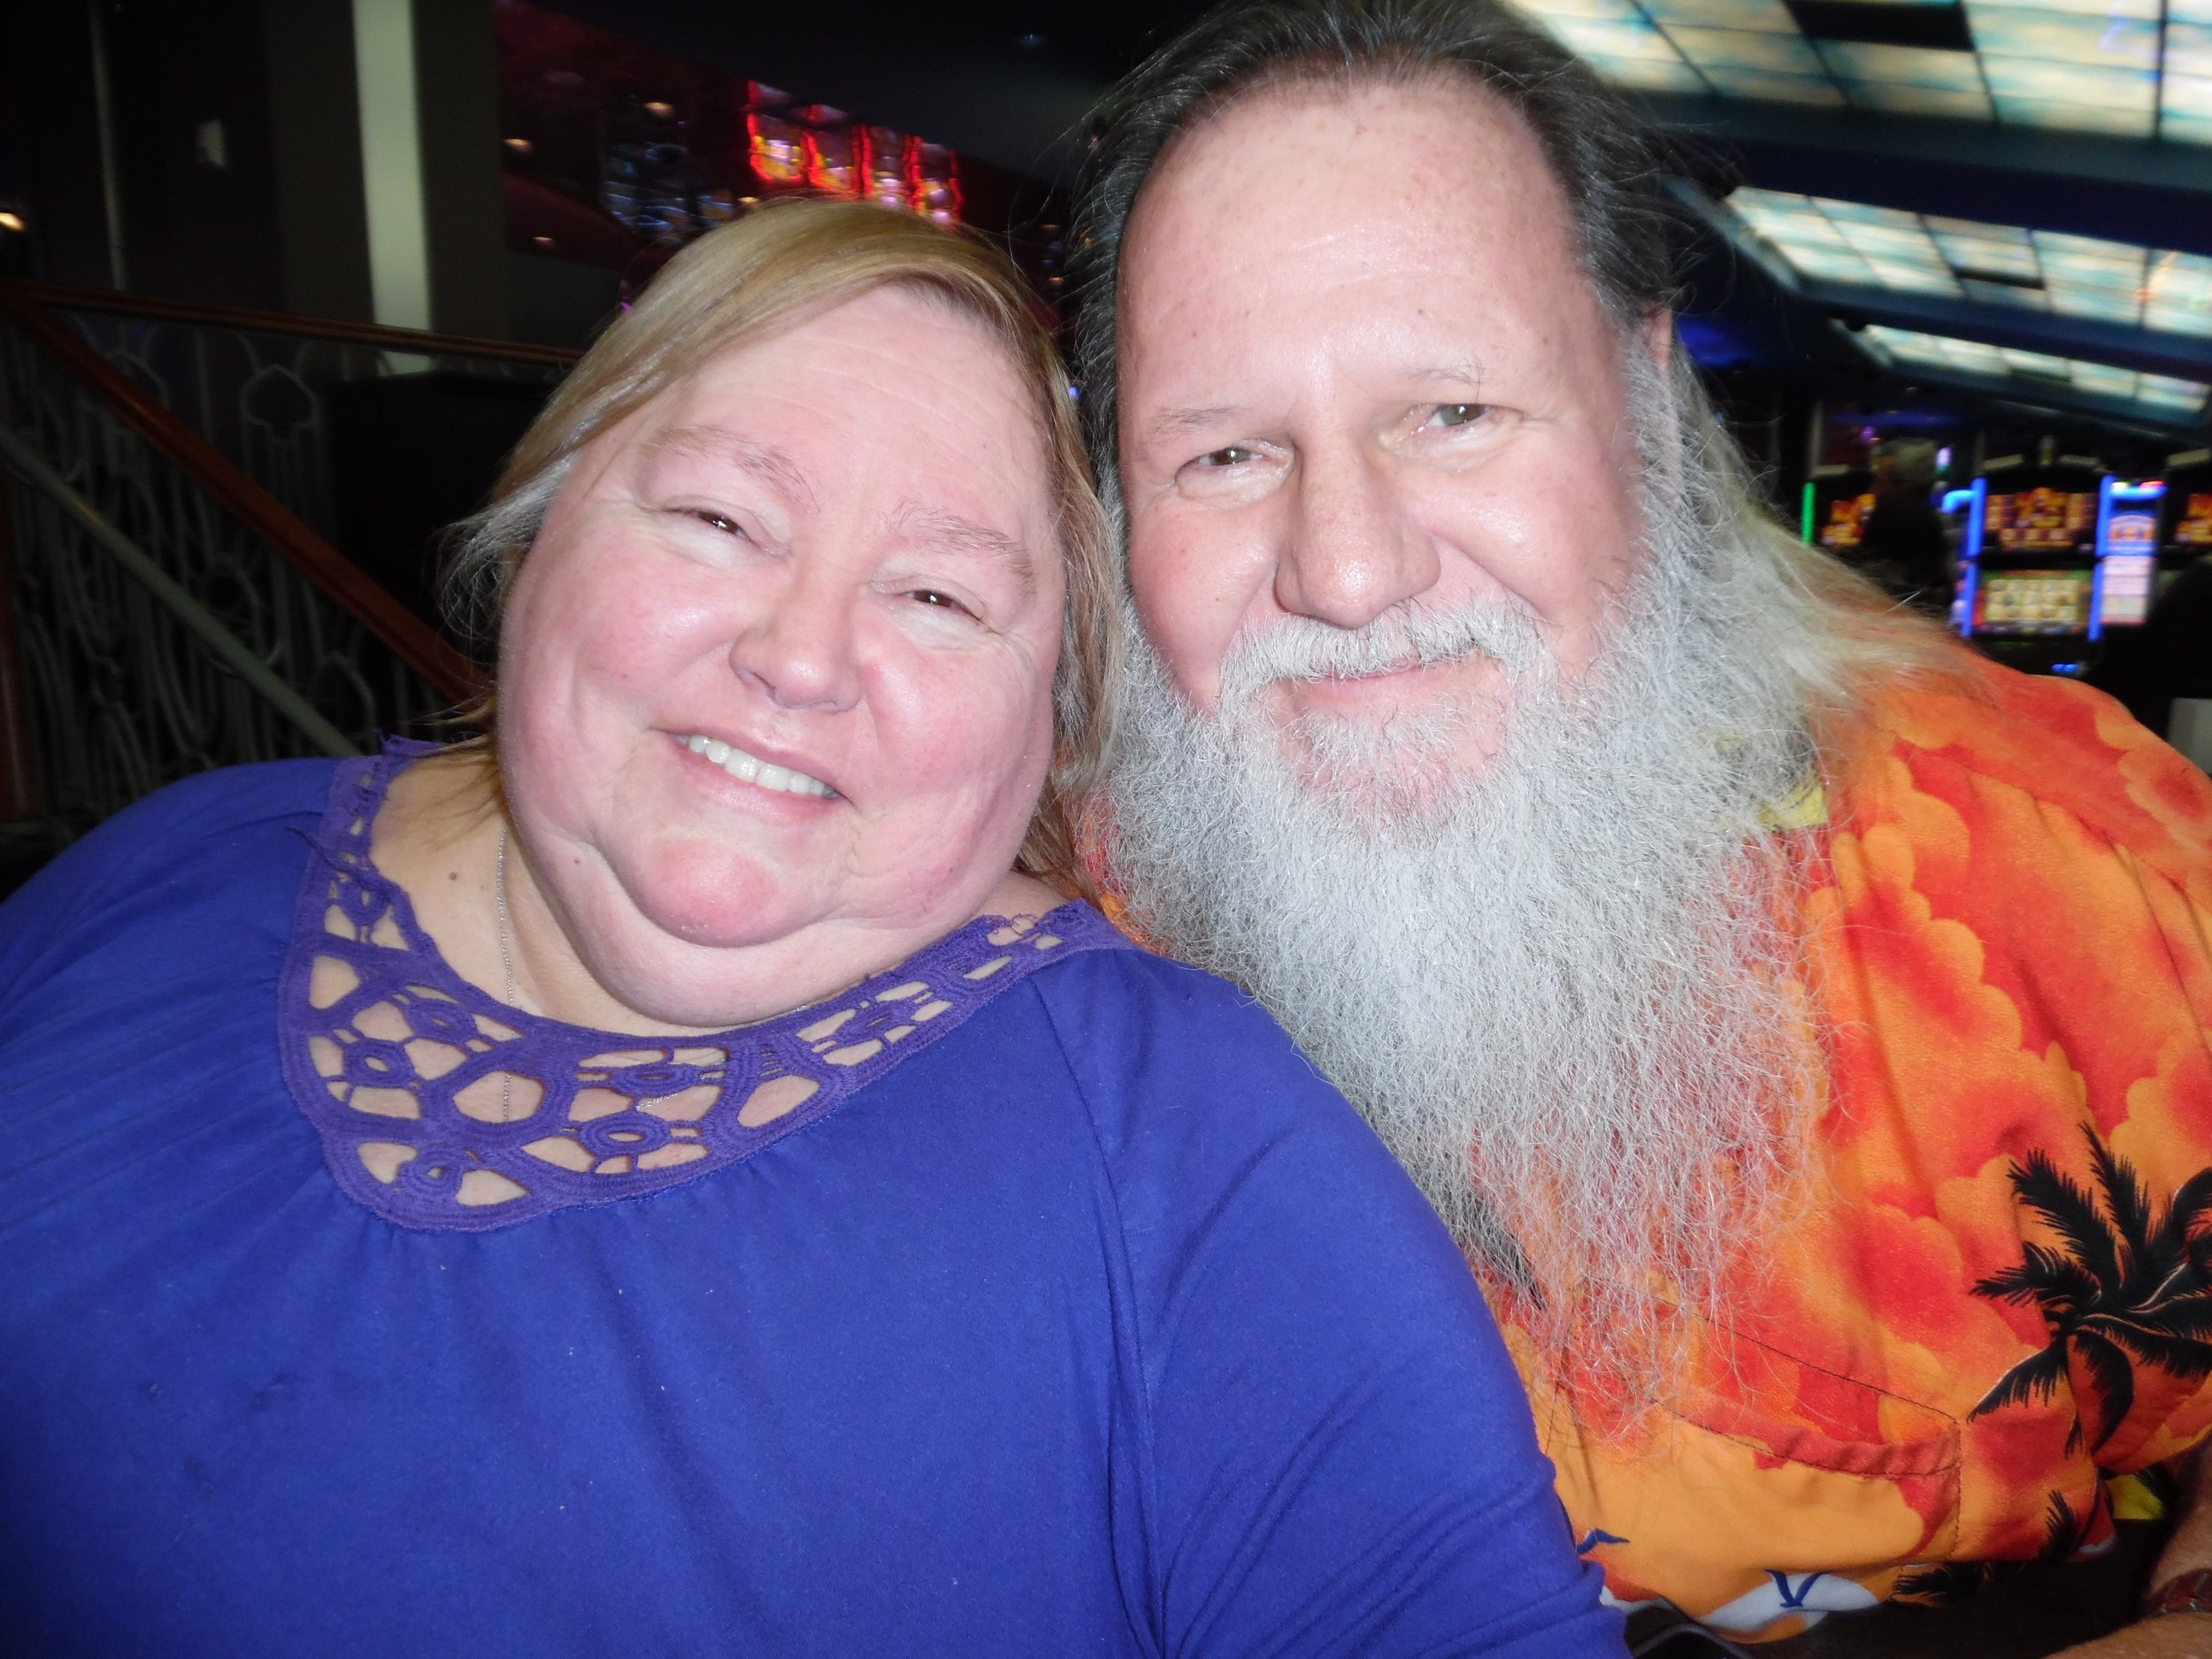 Darlene and John Martin, who are celebrating their 45th wedding anniversary on November 18th, 2017, drove from Belleville, ON, to see ETA  Matt Cage  perform at Flamboro Downs on October 27th, 2017.